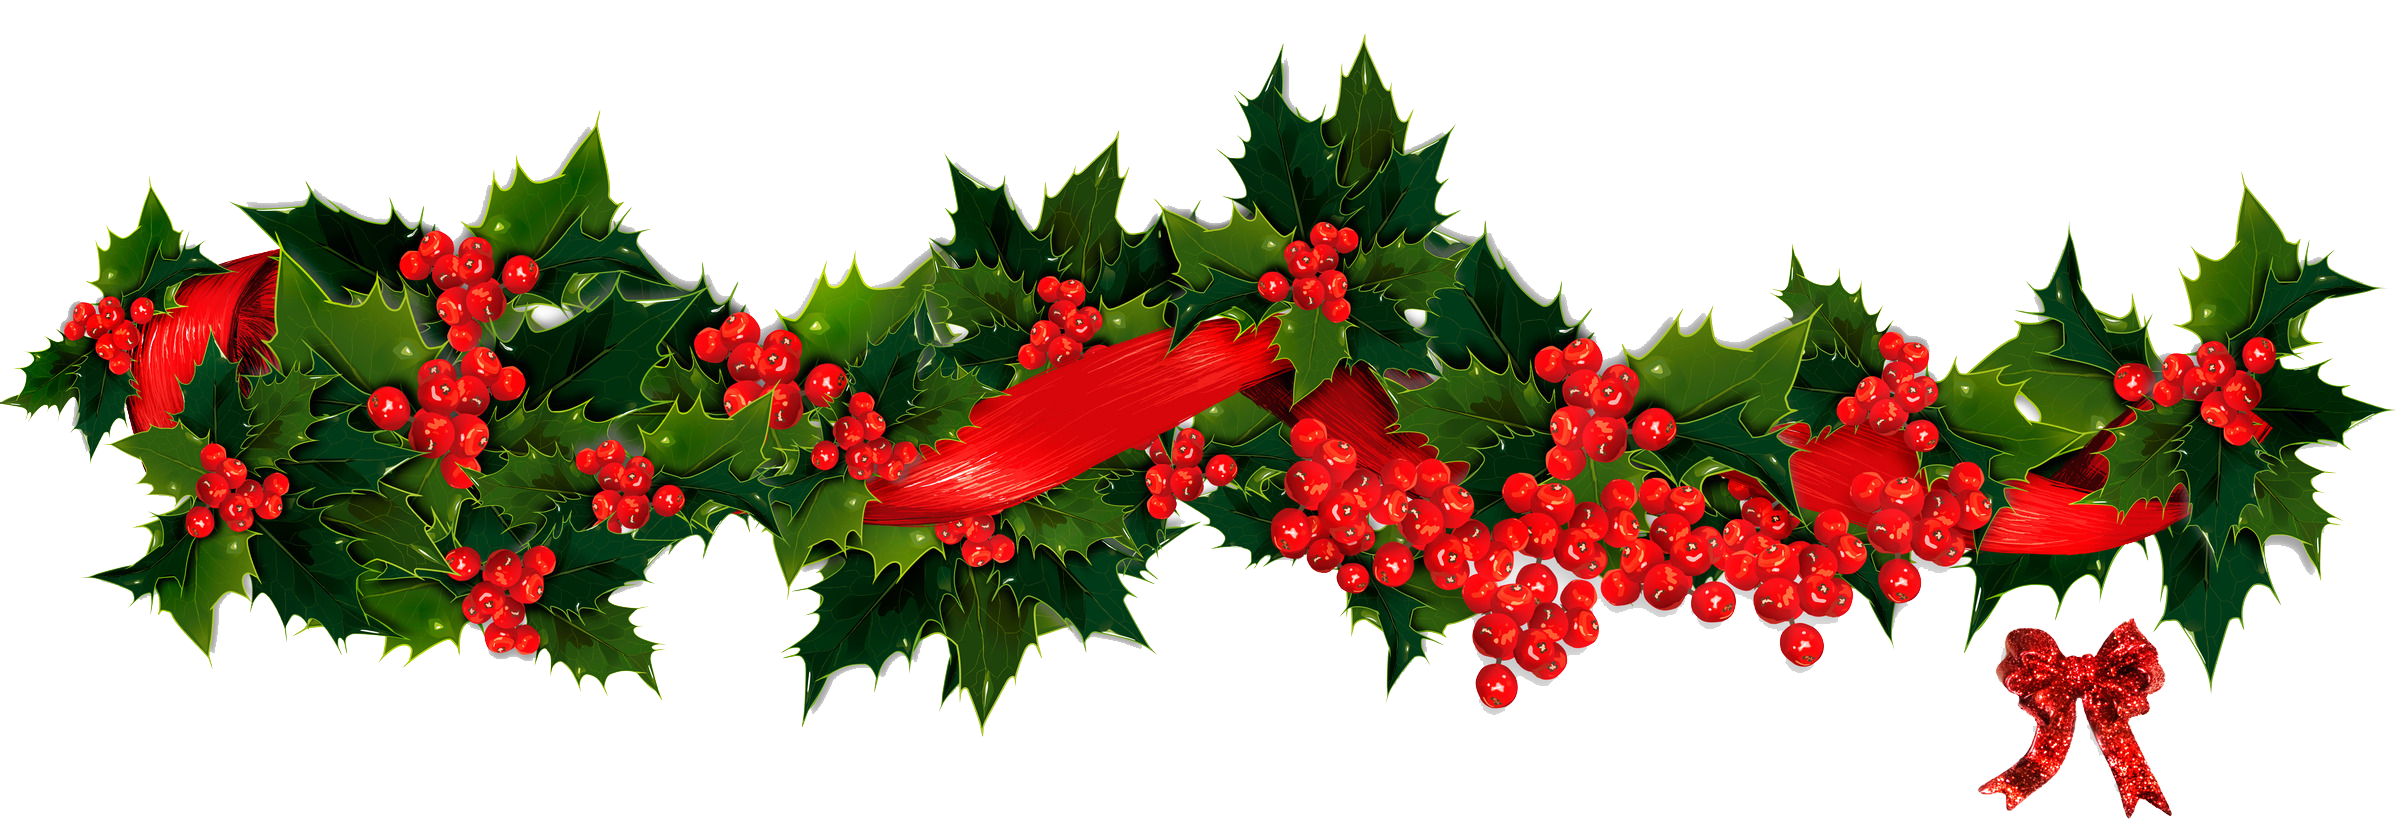 Christmas holly border png. Swag clipart transparent pencil